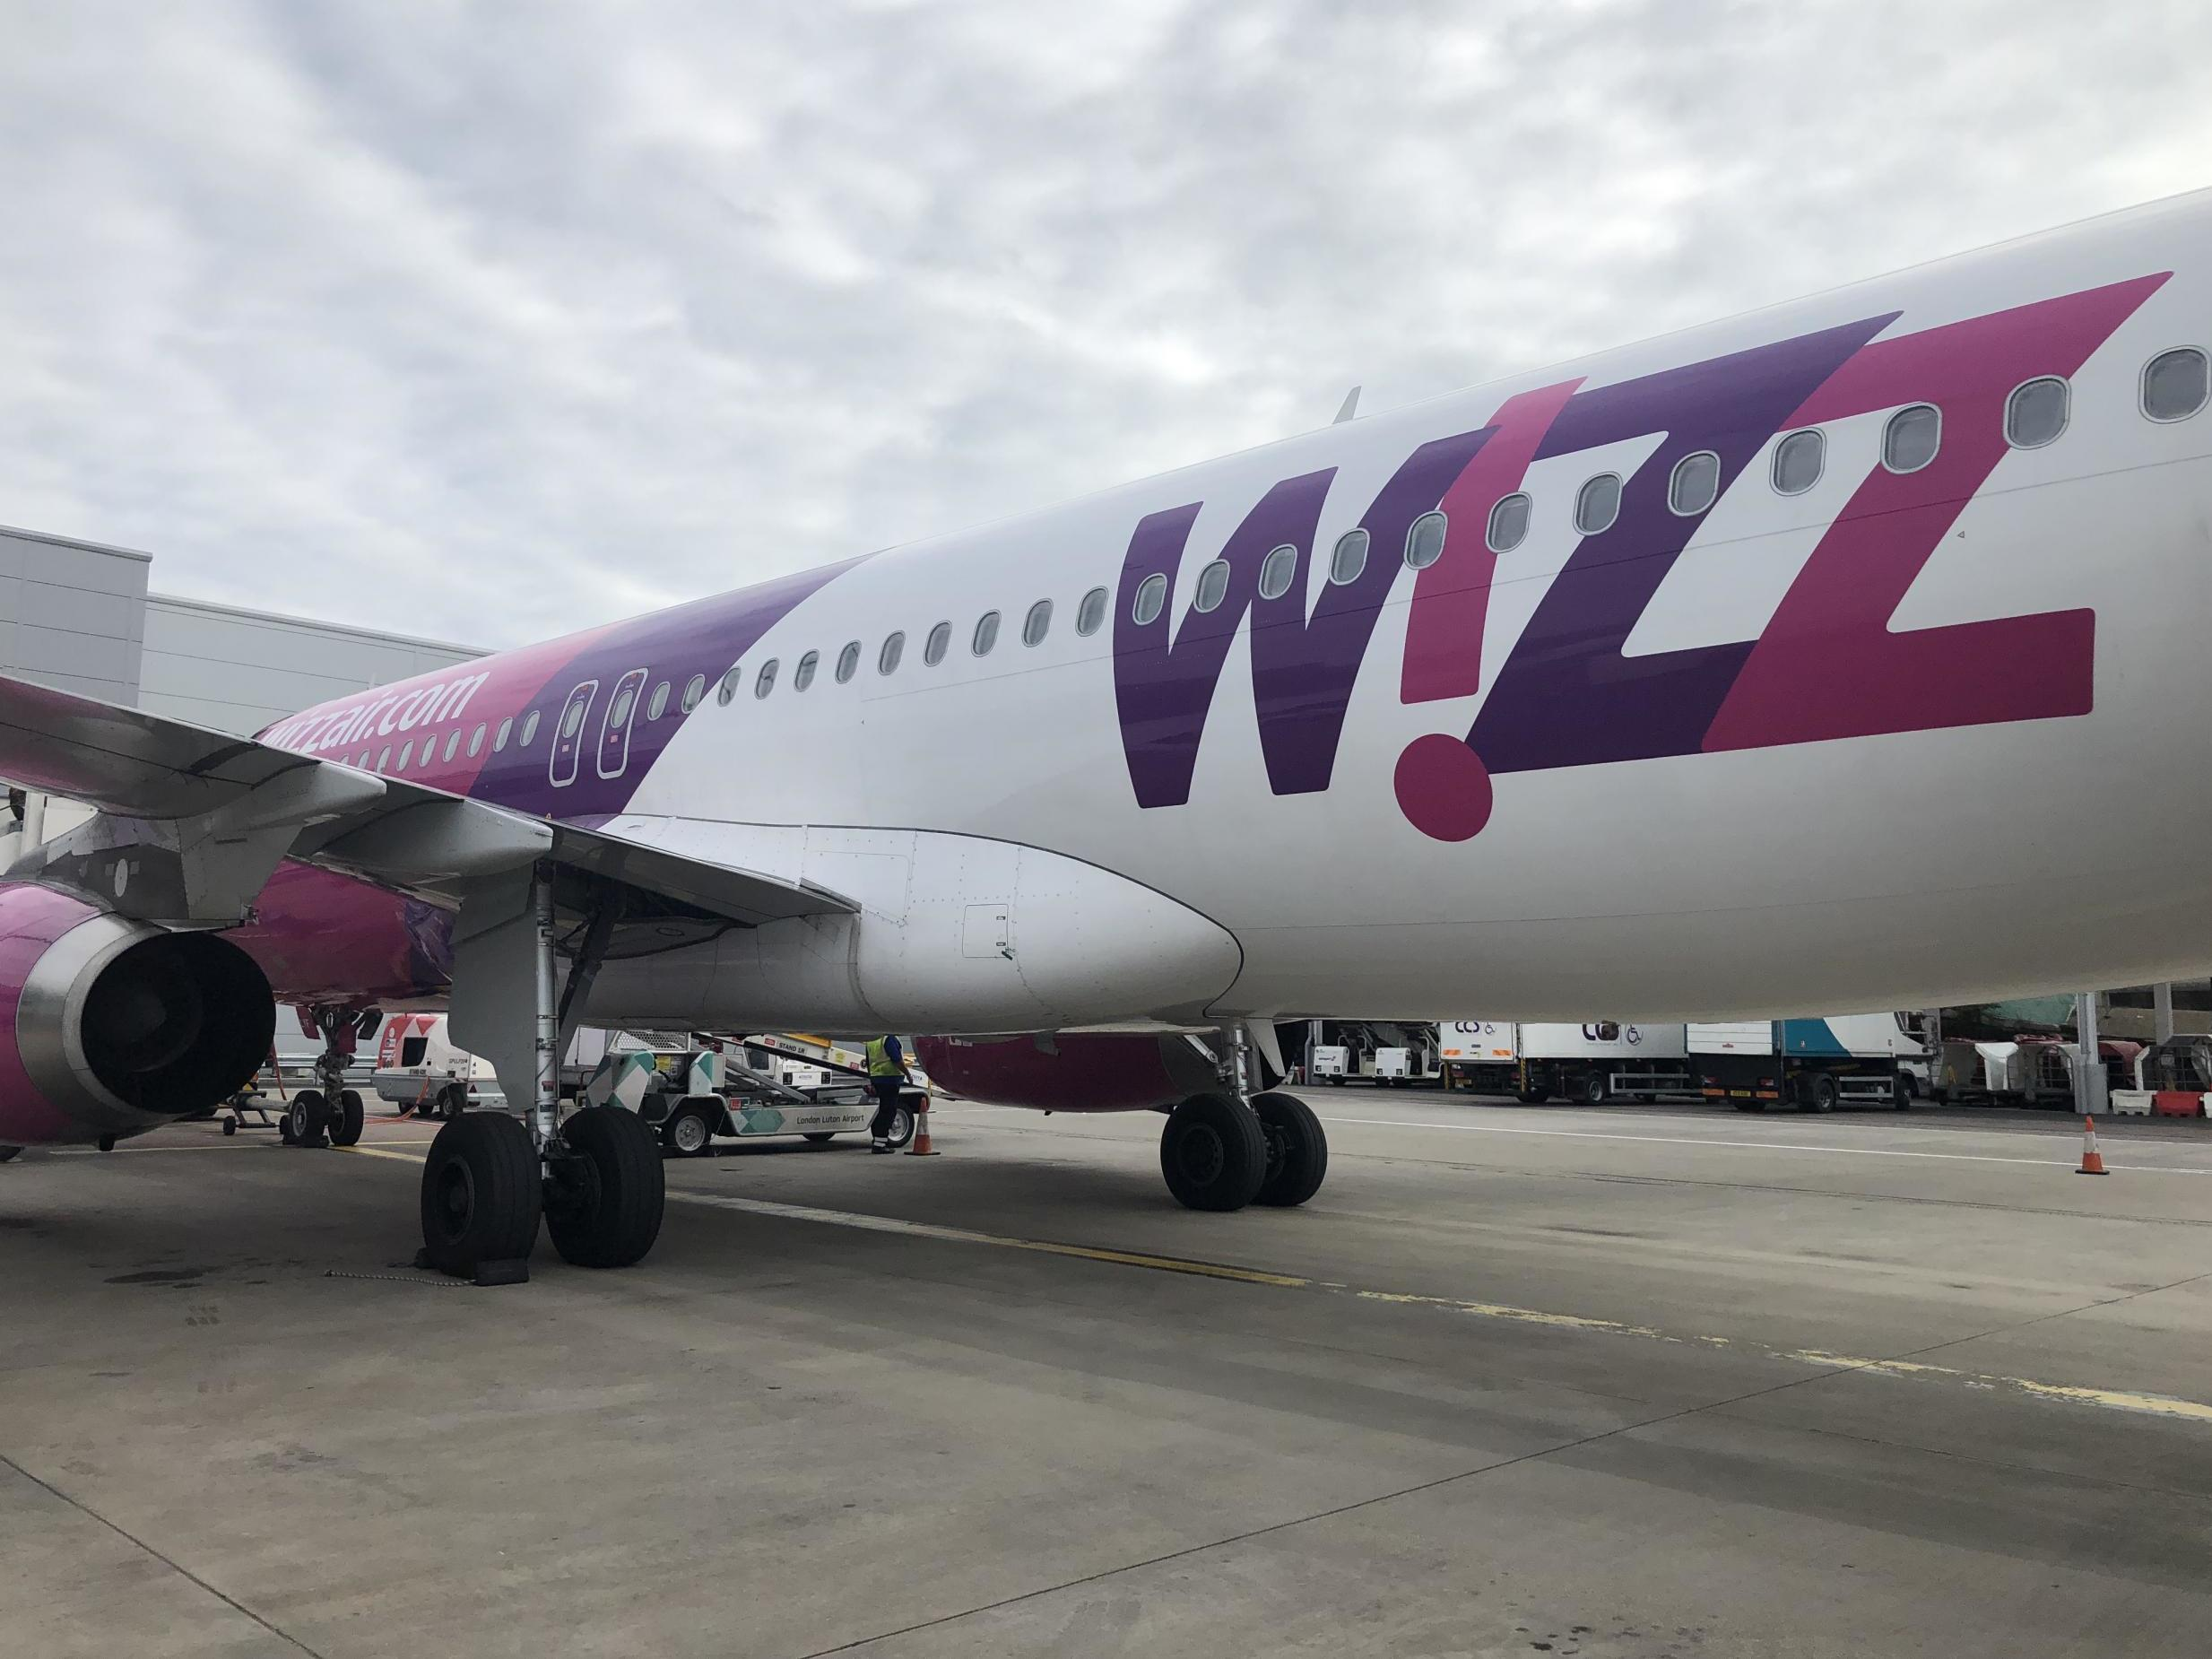 Wizz Air Says Sorry To Passengers Turned Away From Athens Flight For Missing Out Optional Middle Initial The Independent The Independent